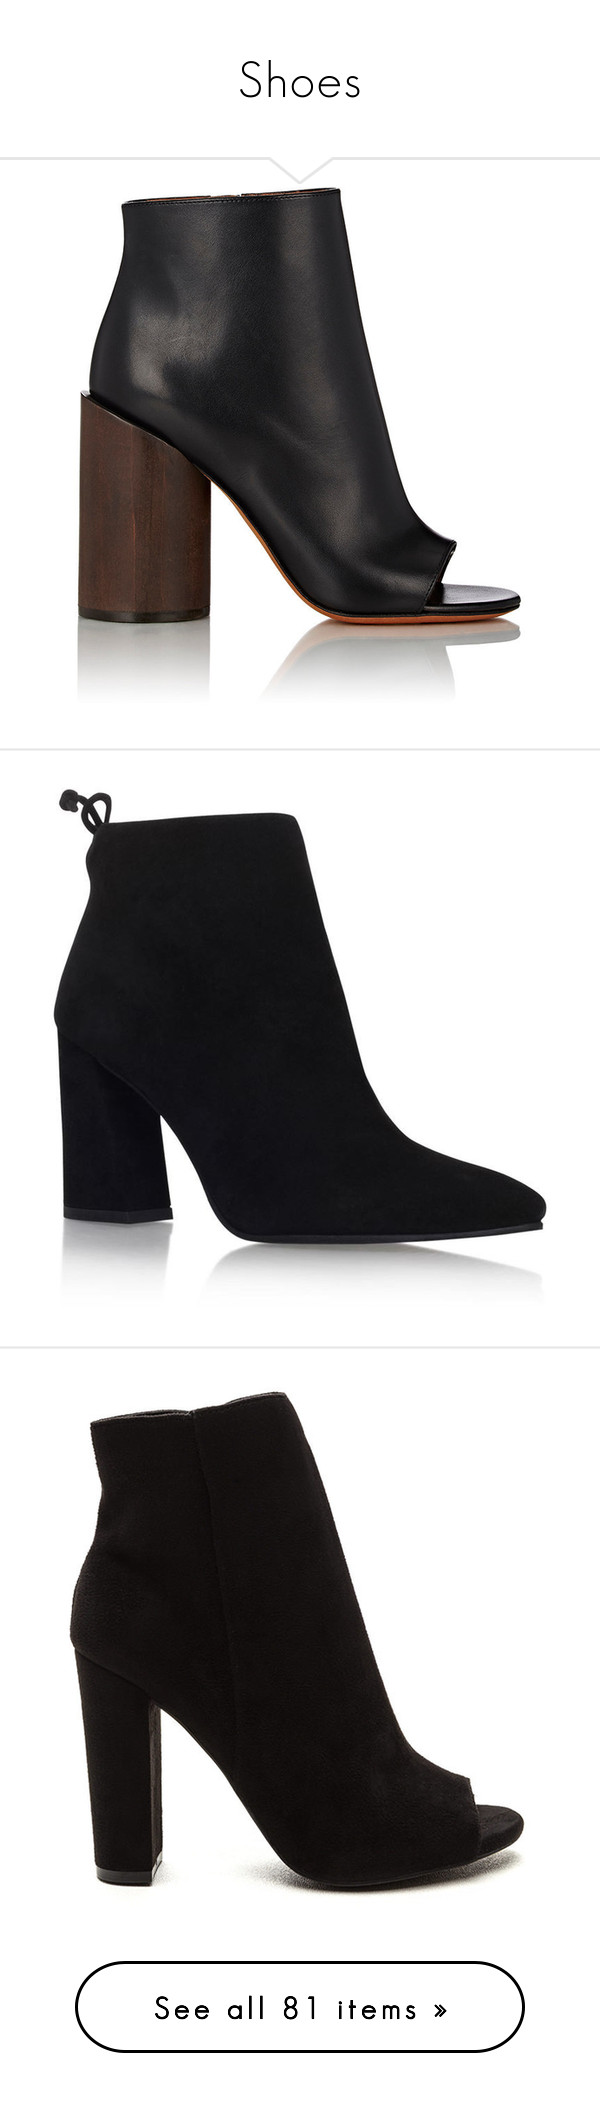 """""""Shoes"""" by gina-cremont on Polyvore featuring shoes, boots, ankle booties, heels, ankle boots, booties, colorless, black boots, black bootie and black ankle booties"""